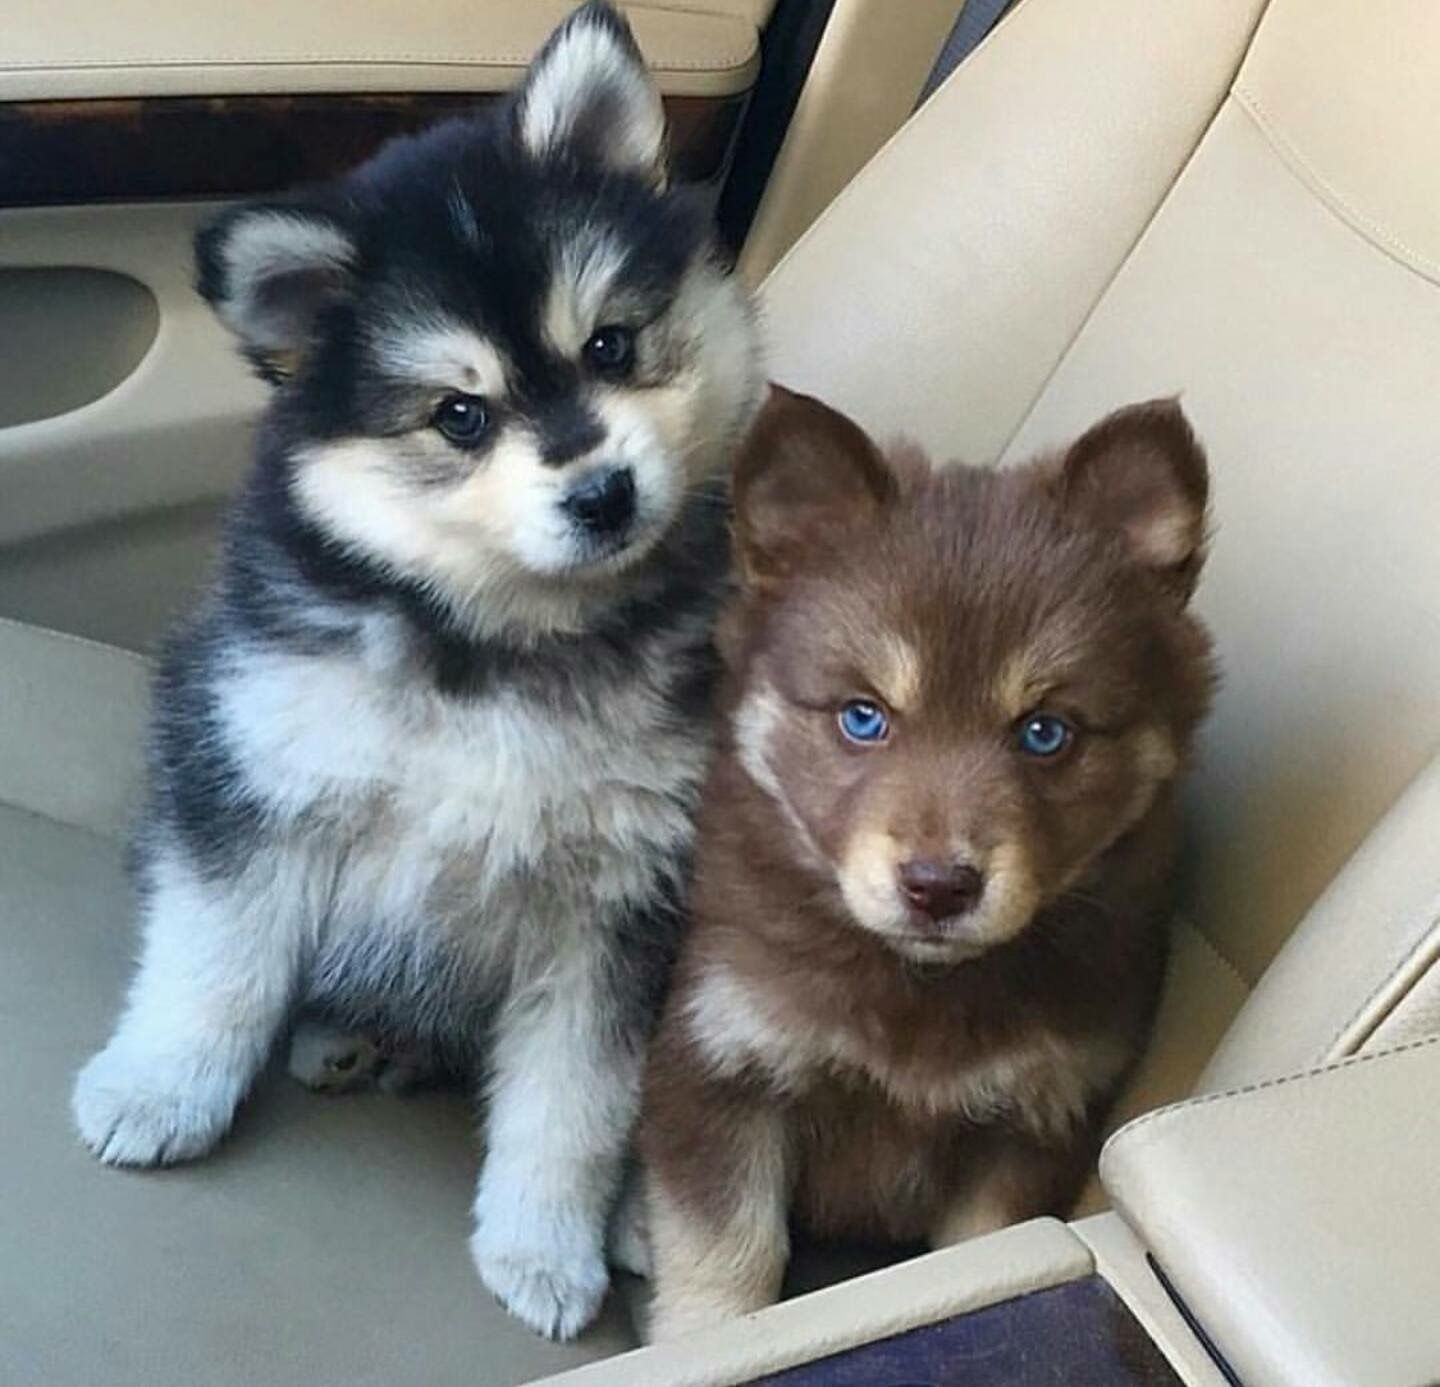 Pin by sonia5671 on Puppies Cute animals, Cute baby